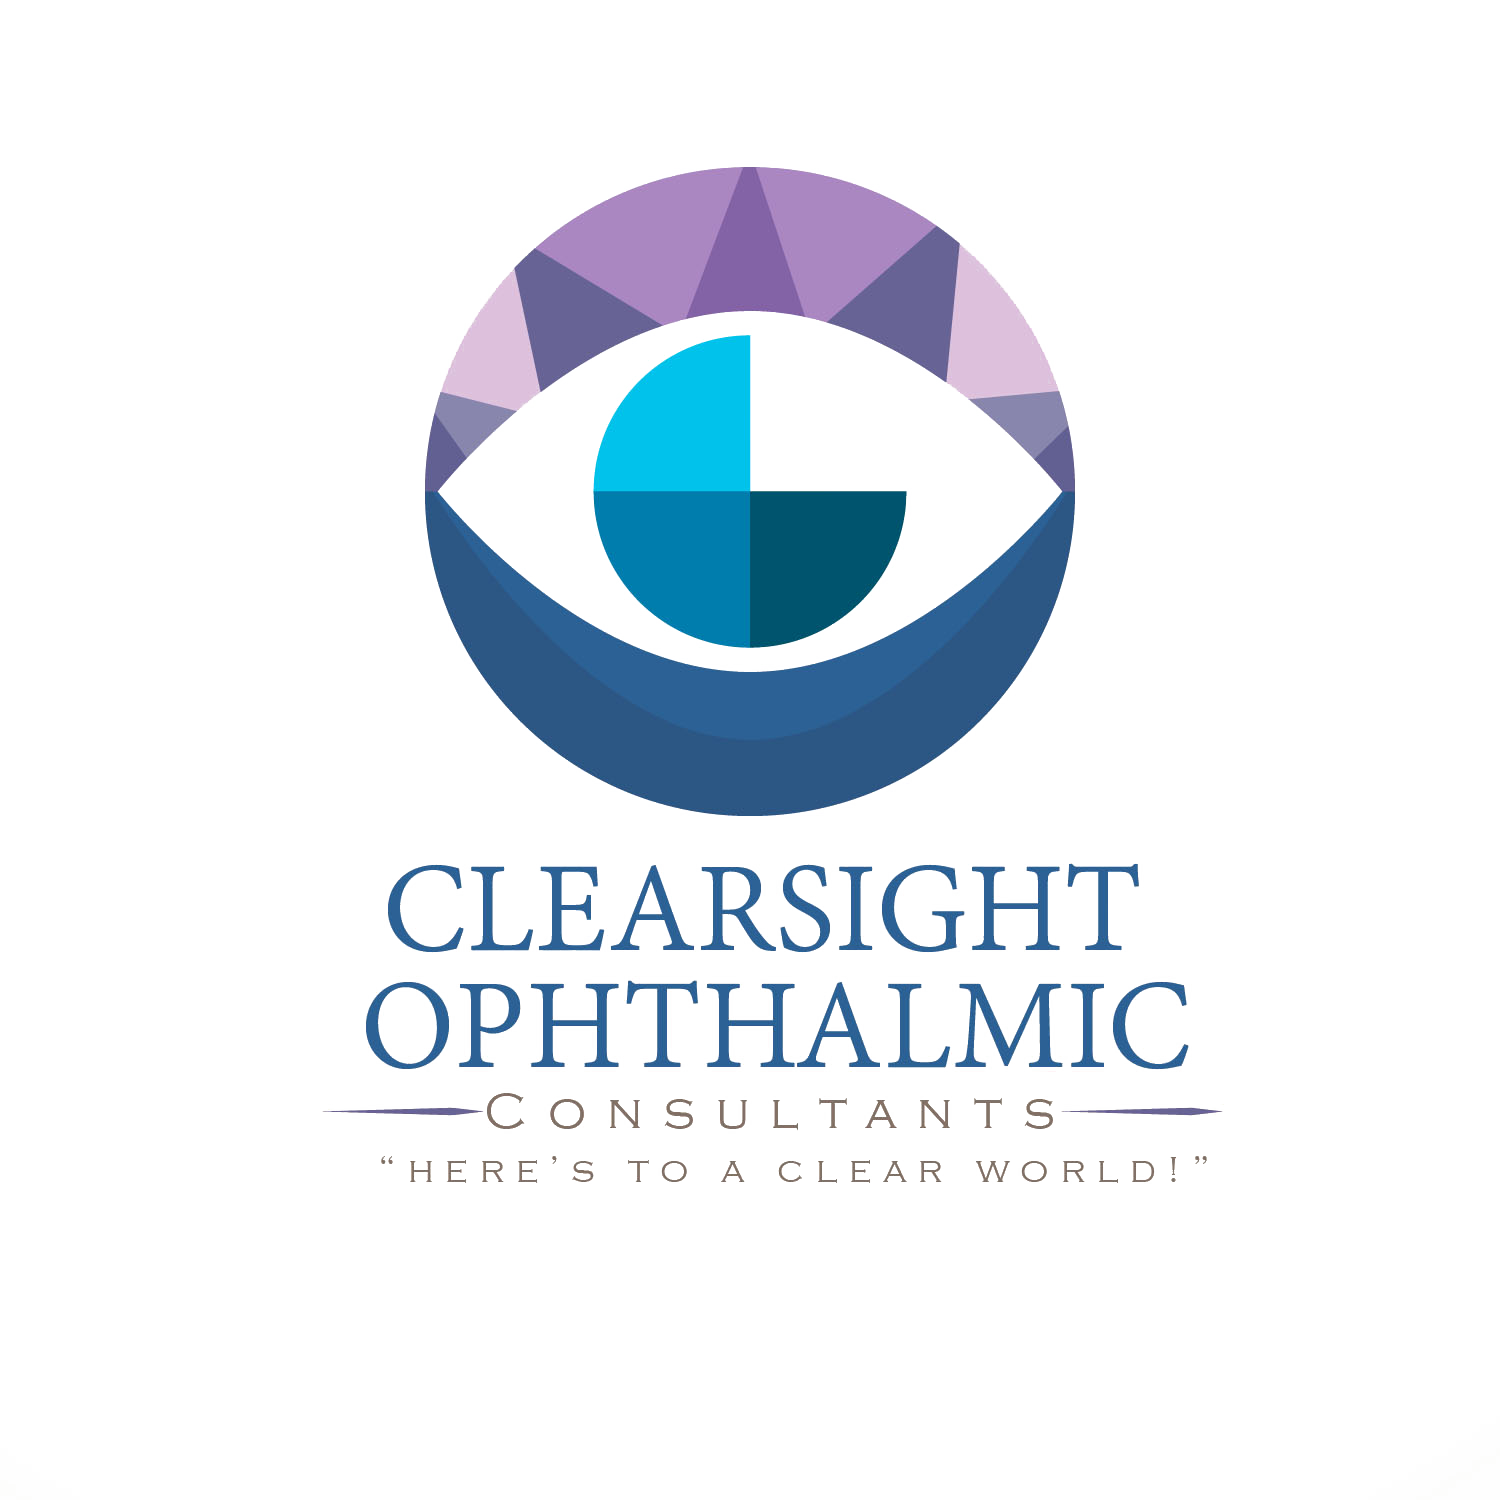 Clearsight Ophthalmic Consultants